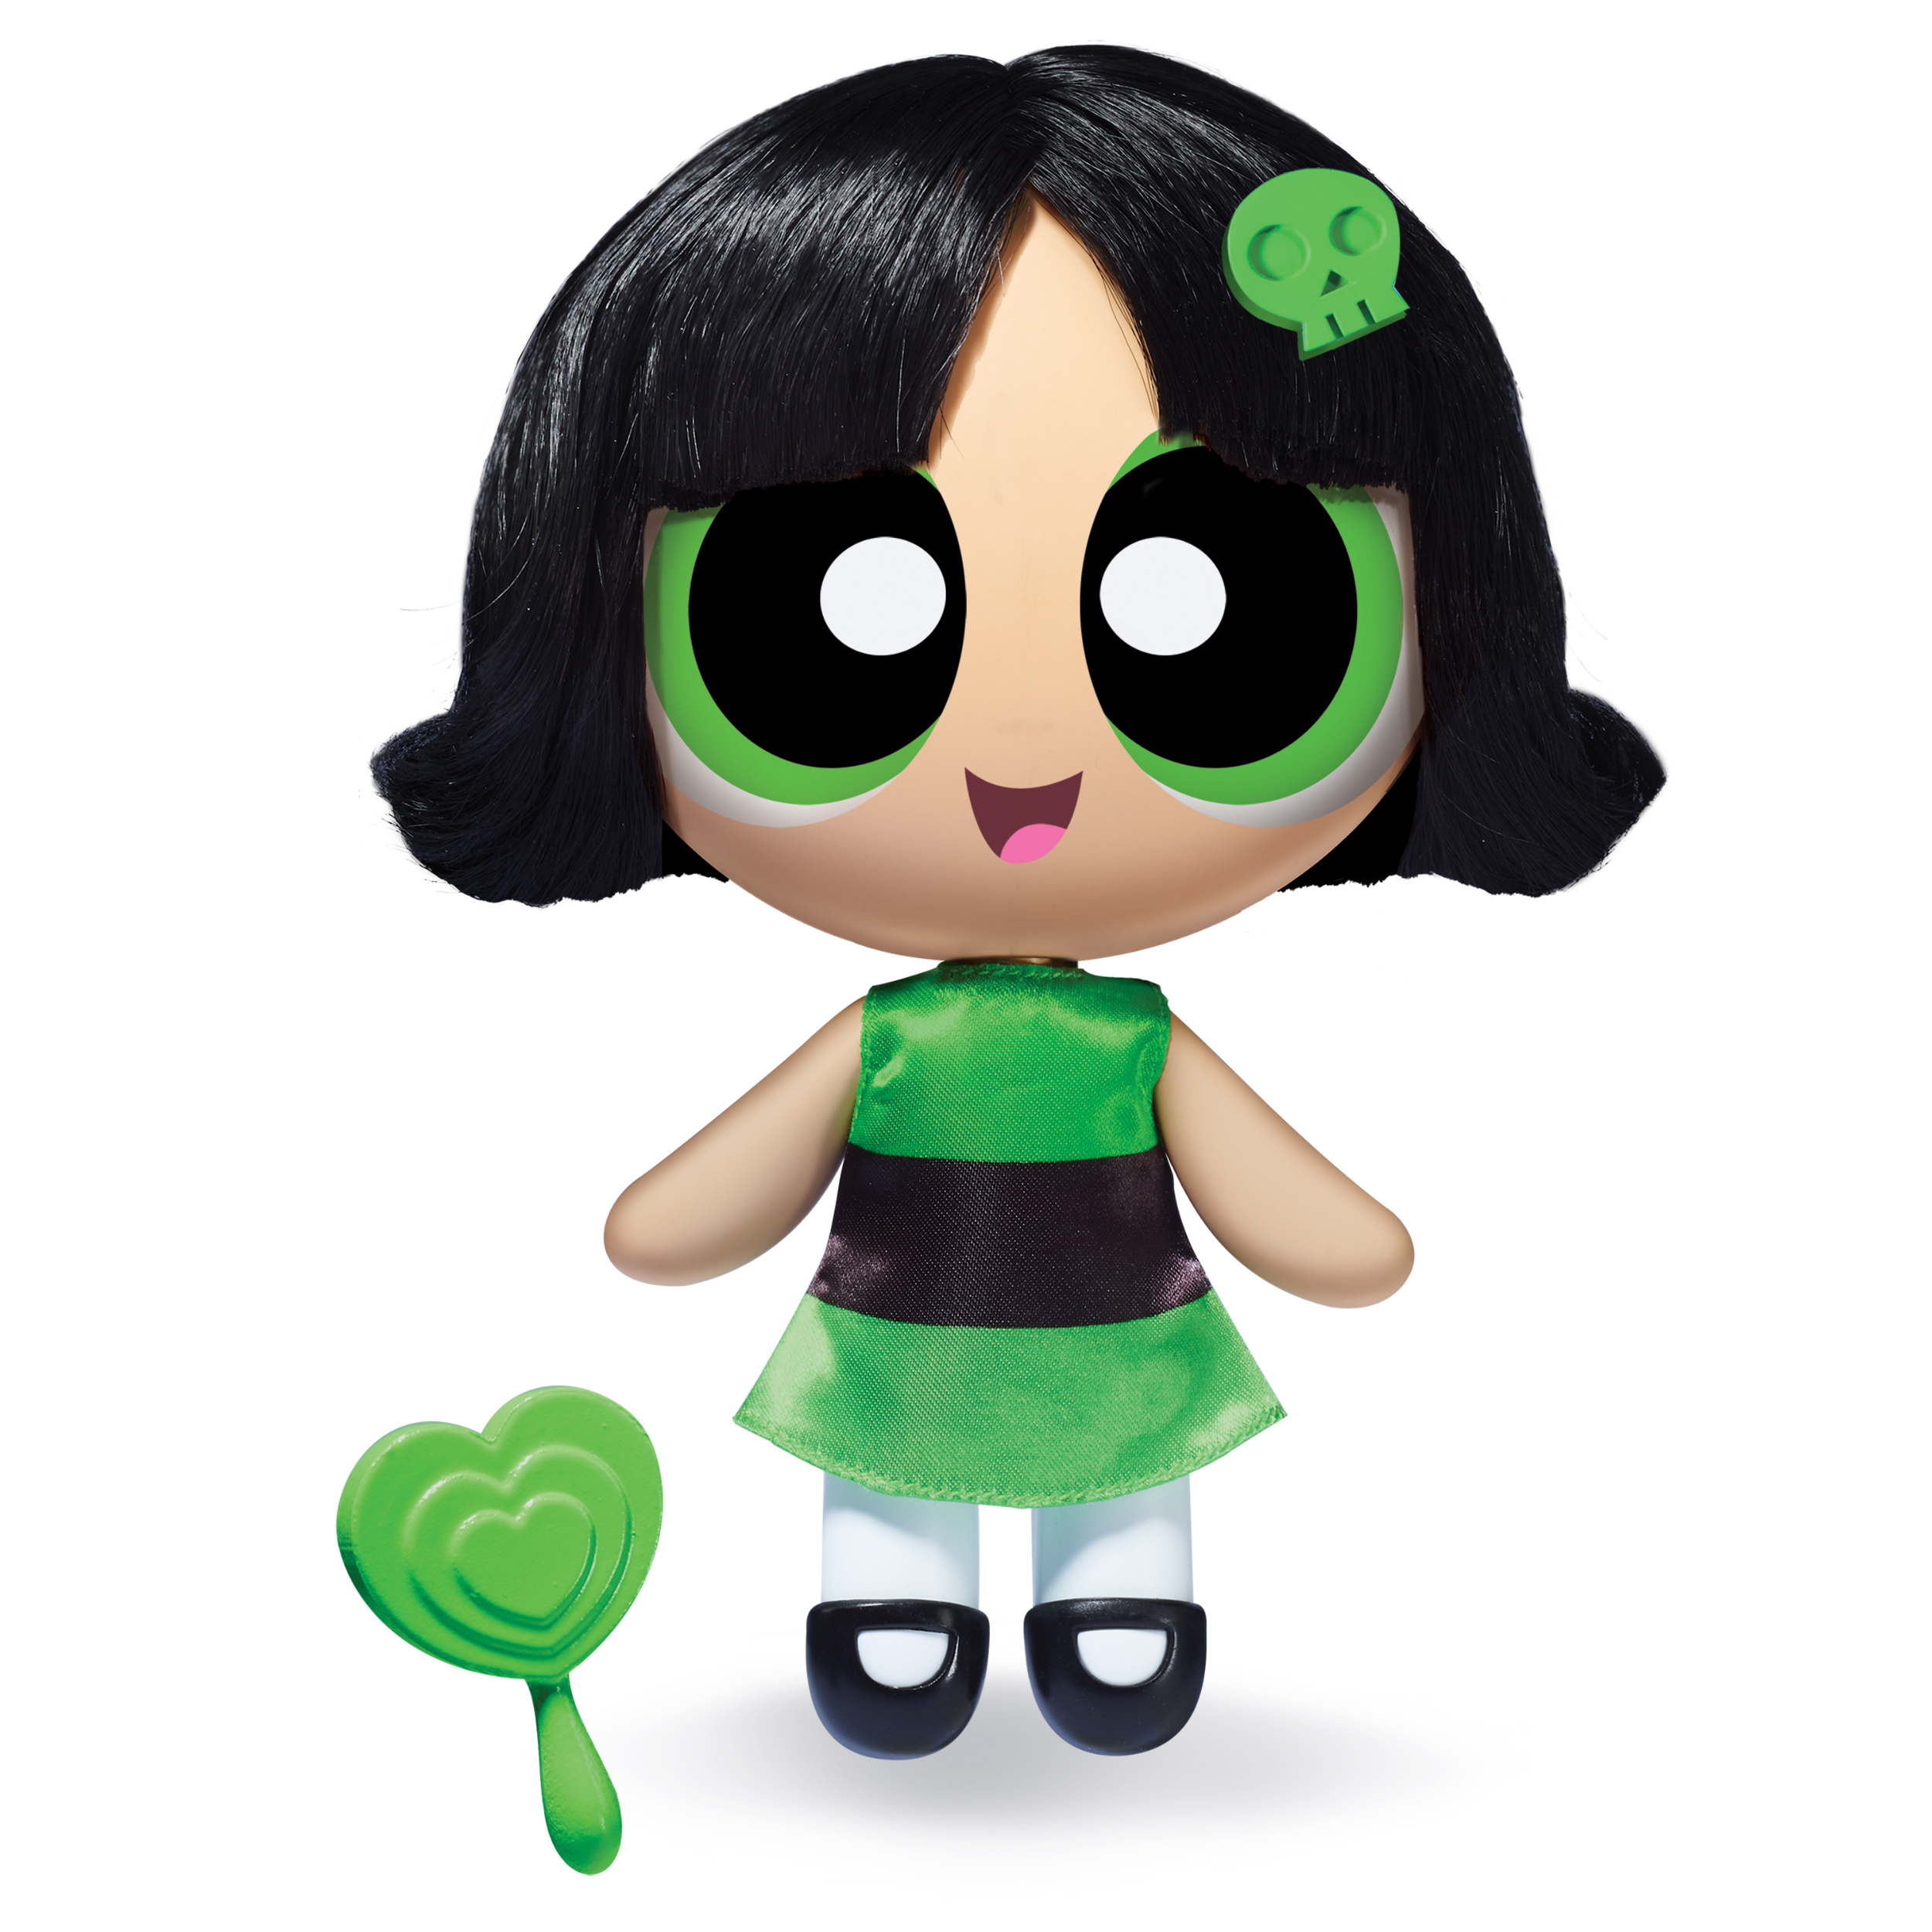 The Powerpuff Girls, 6 Inch Deluxe Dolls, Buttercup, by Spin Master